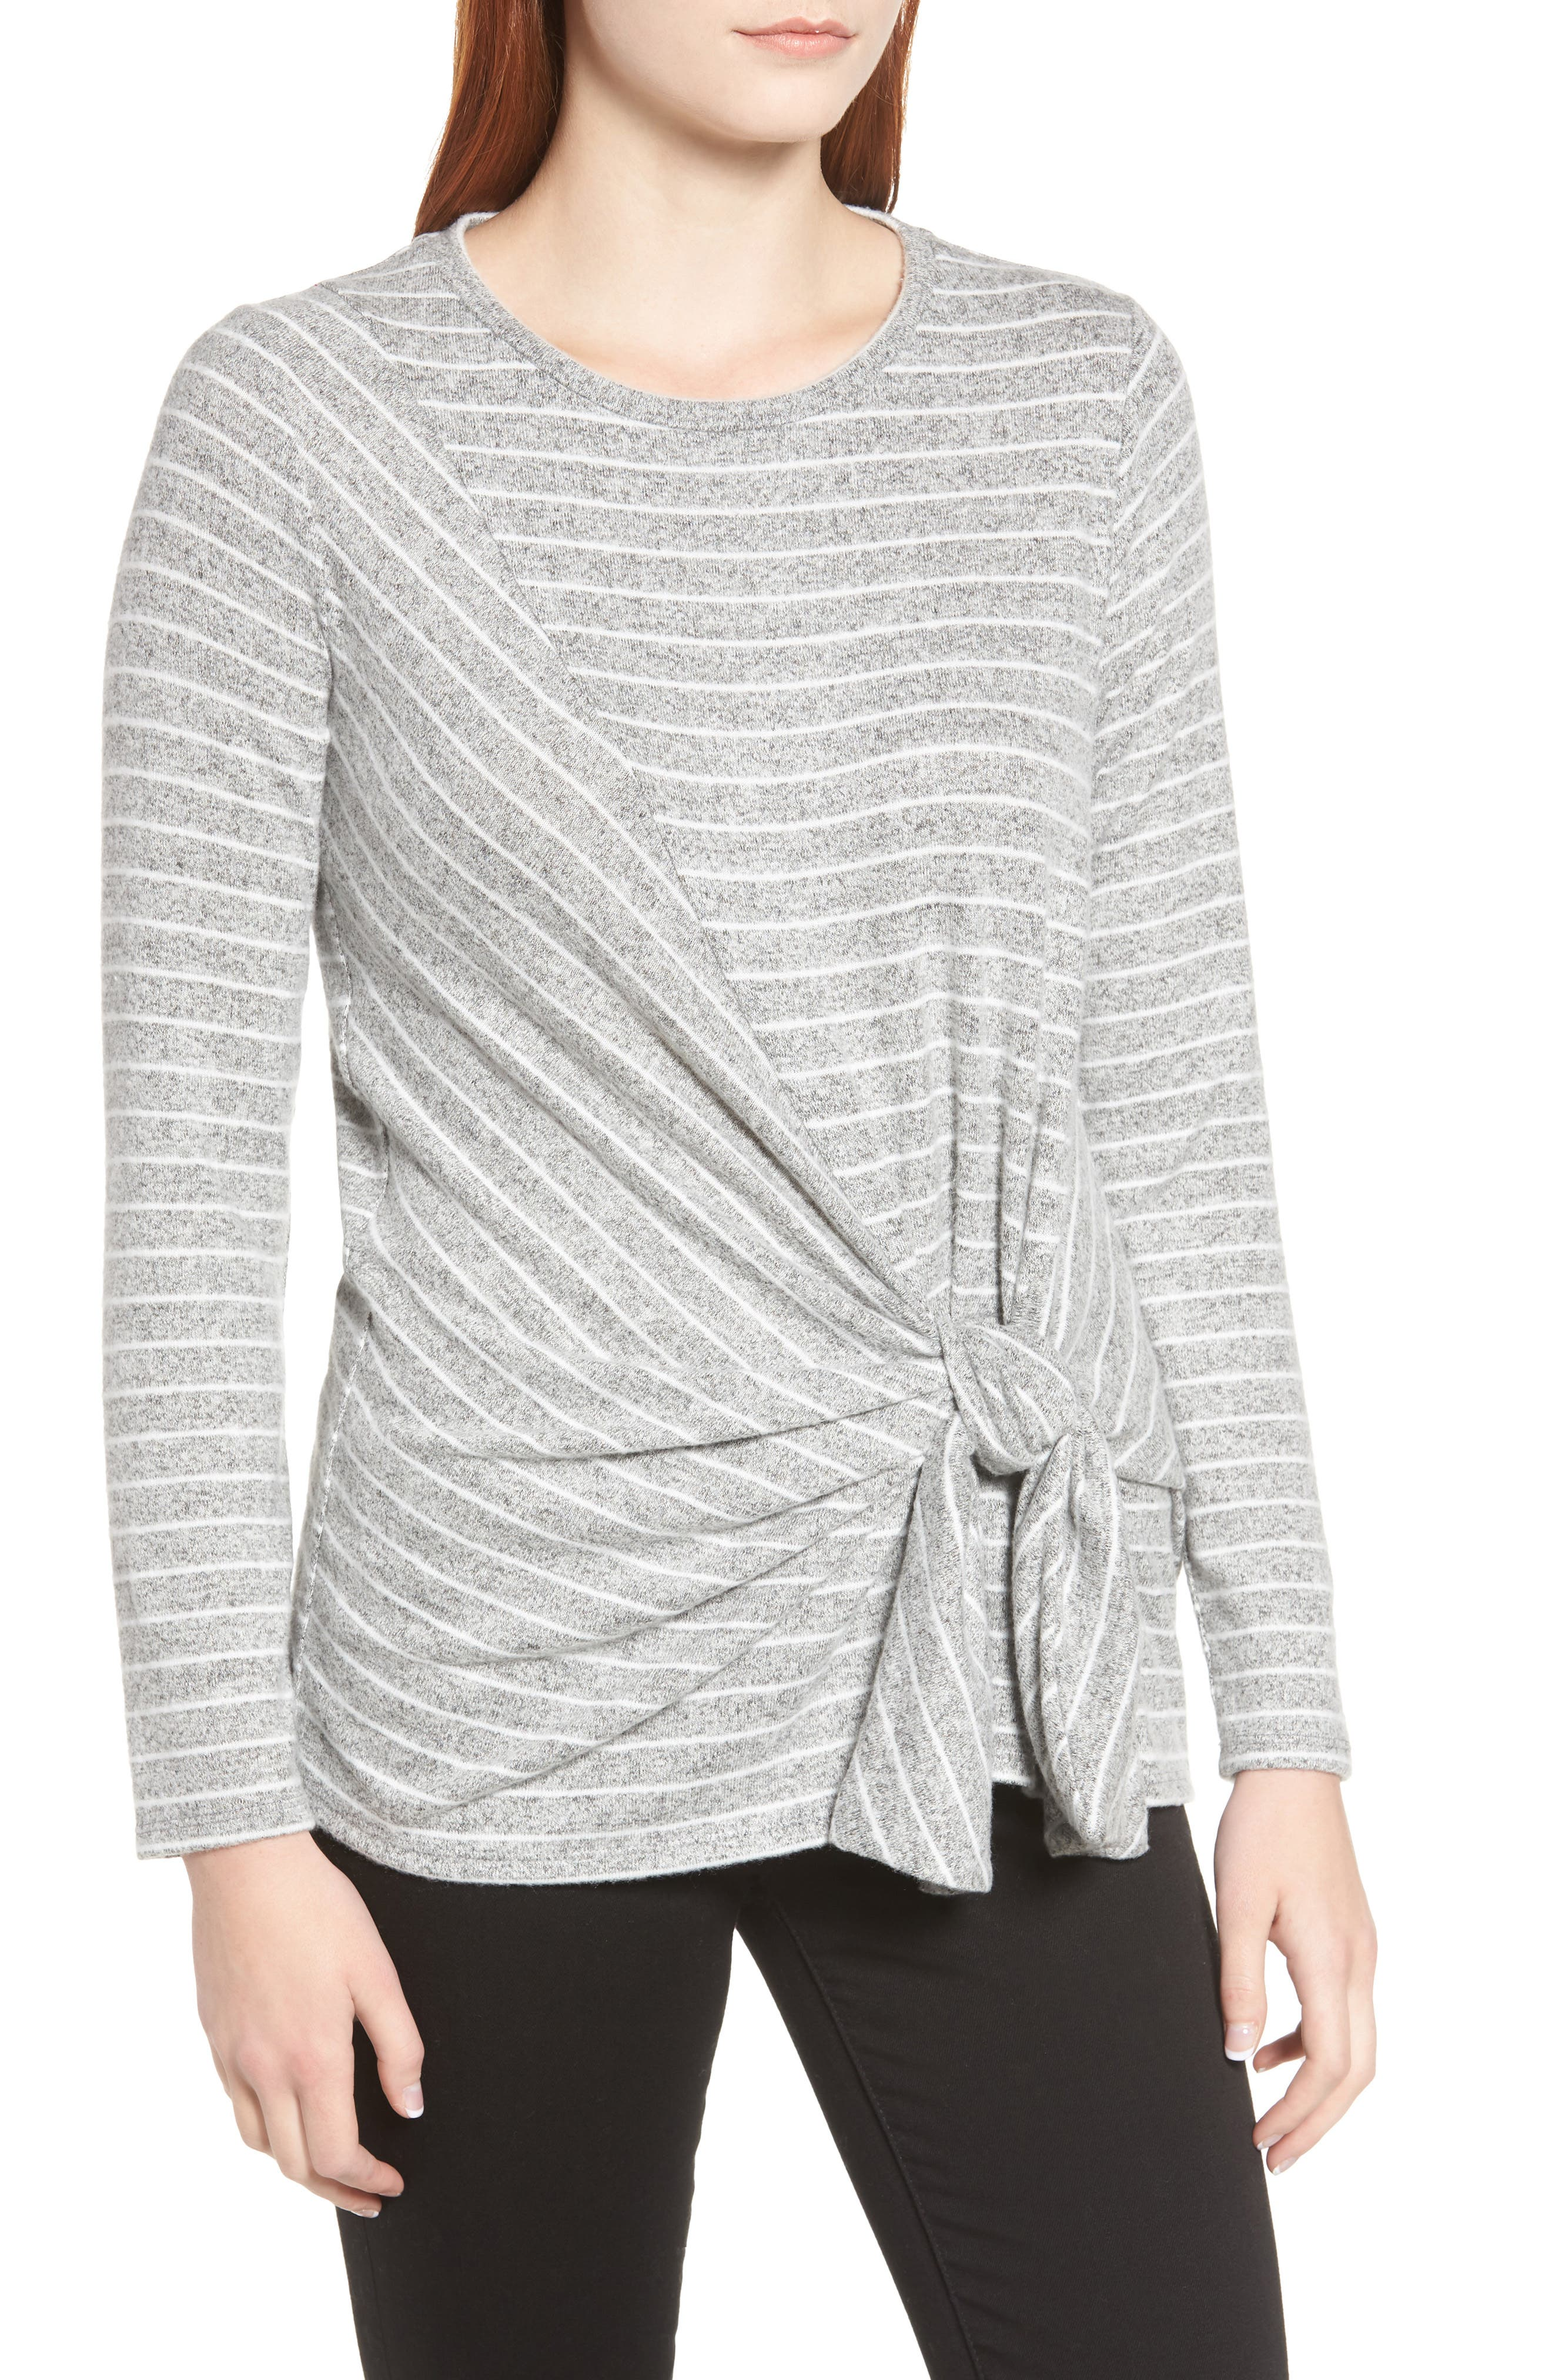 x Living in Yellow Lou Tie Front Fleece Sweater,                             Main thumbnail 1, color,                             GREY/ IVORY